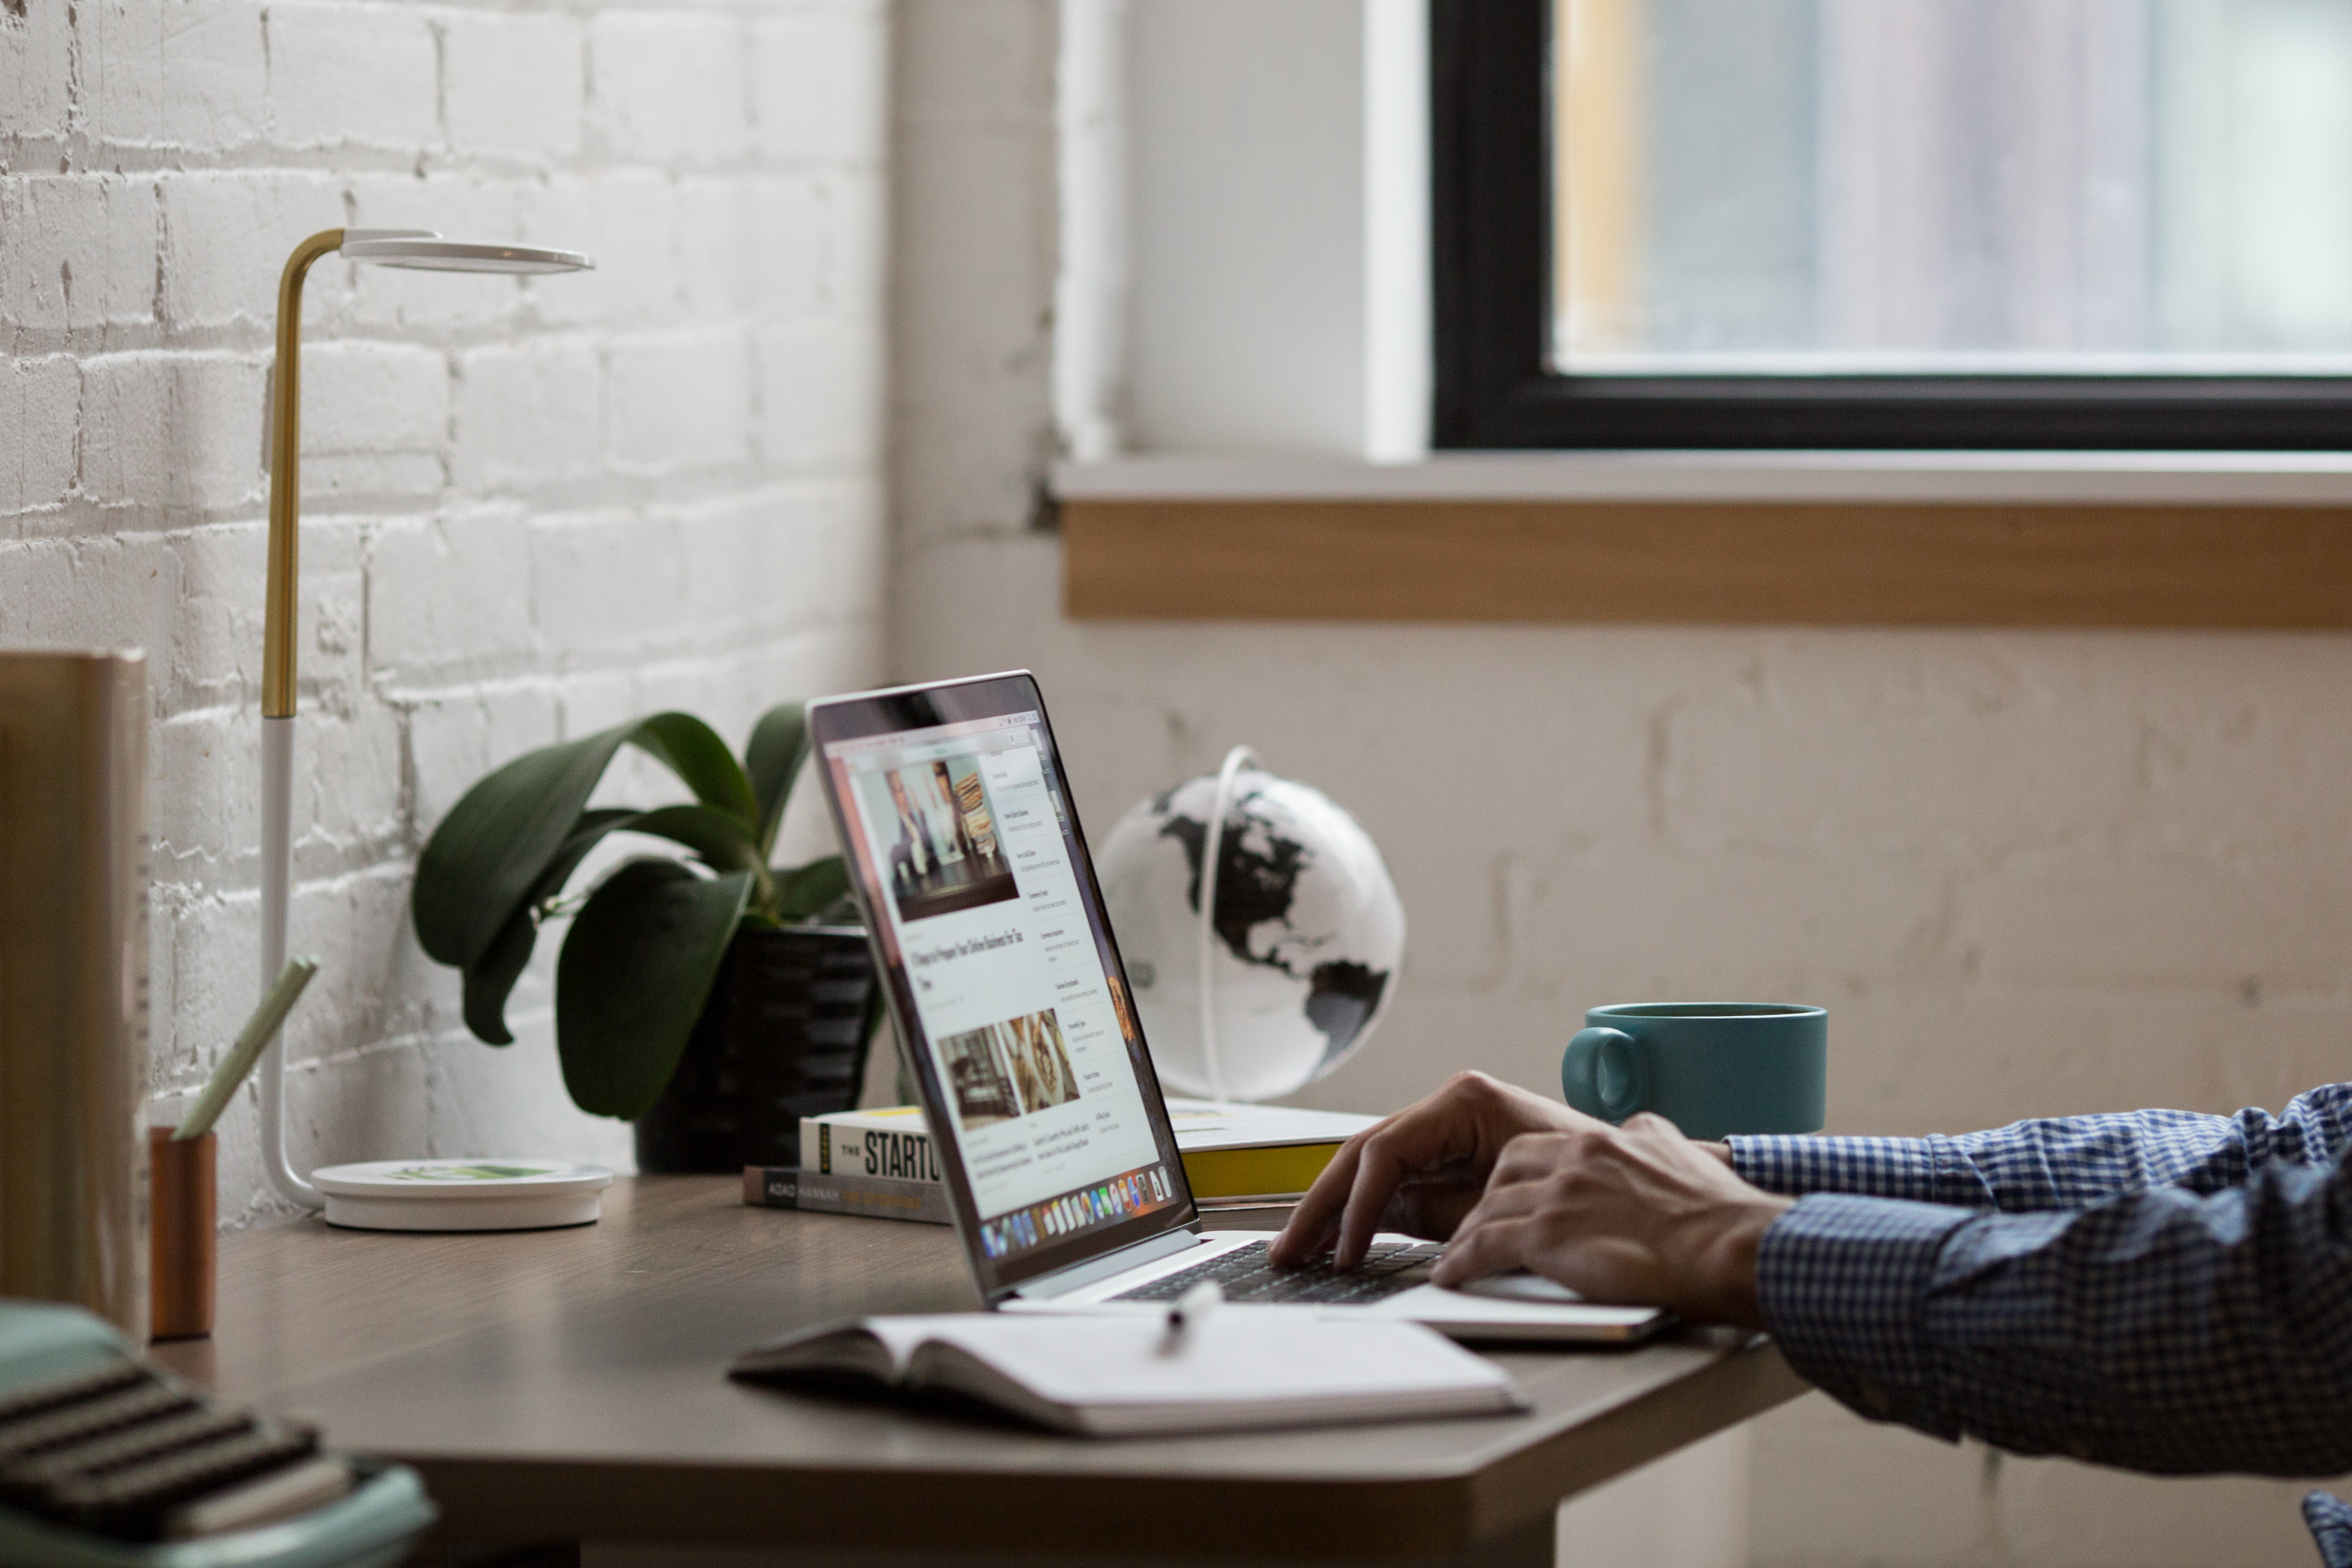 Man Sitting in Front of Turned-on Laptop on Brown Wooden Desk